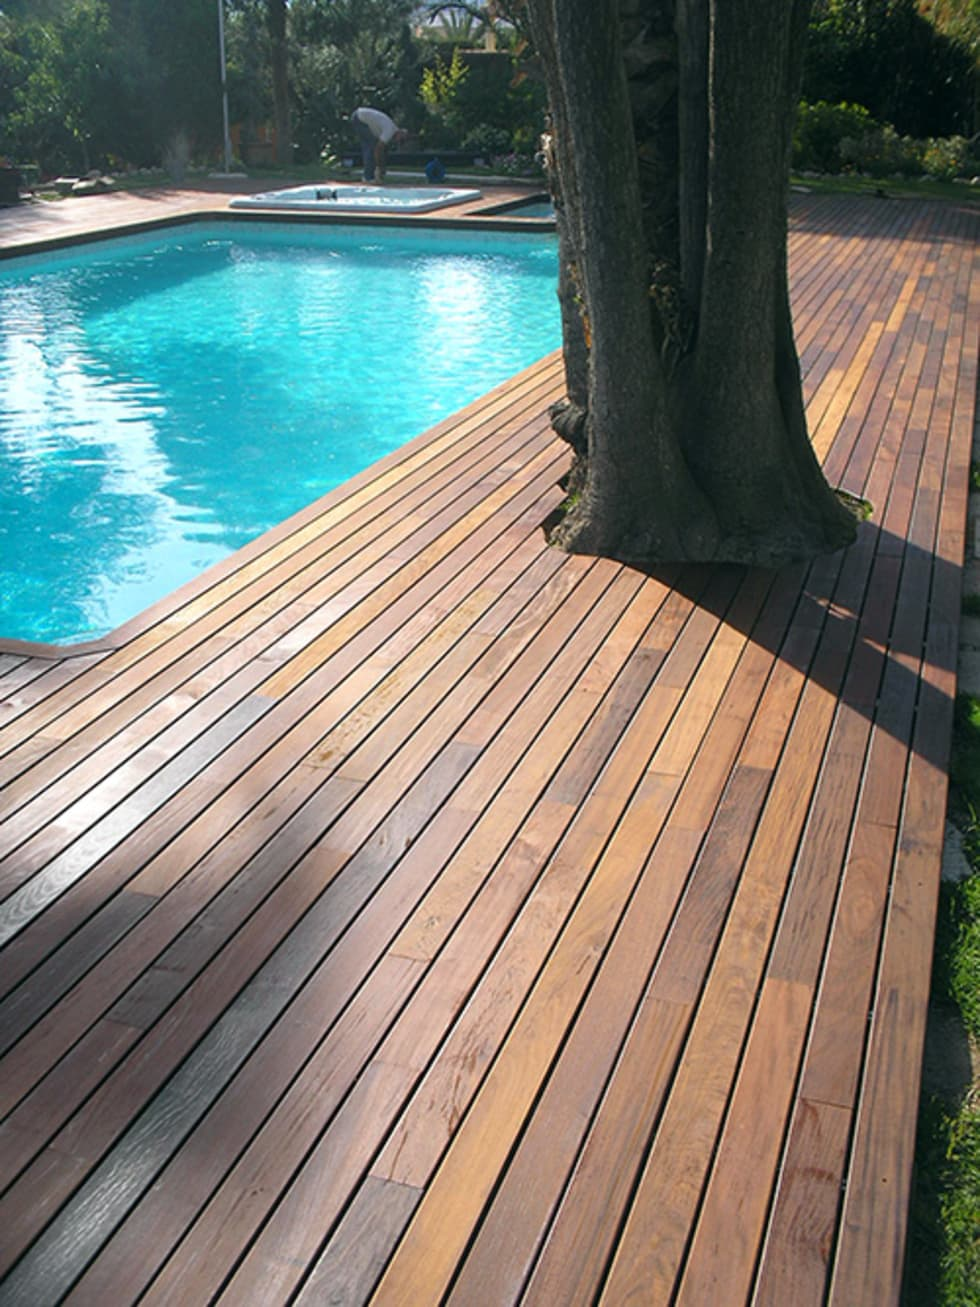 Tarimas Para Piscinas. Trendy Proyecto Entarimado Chalet Parquet Las ...